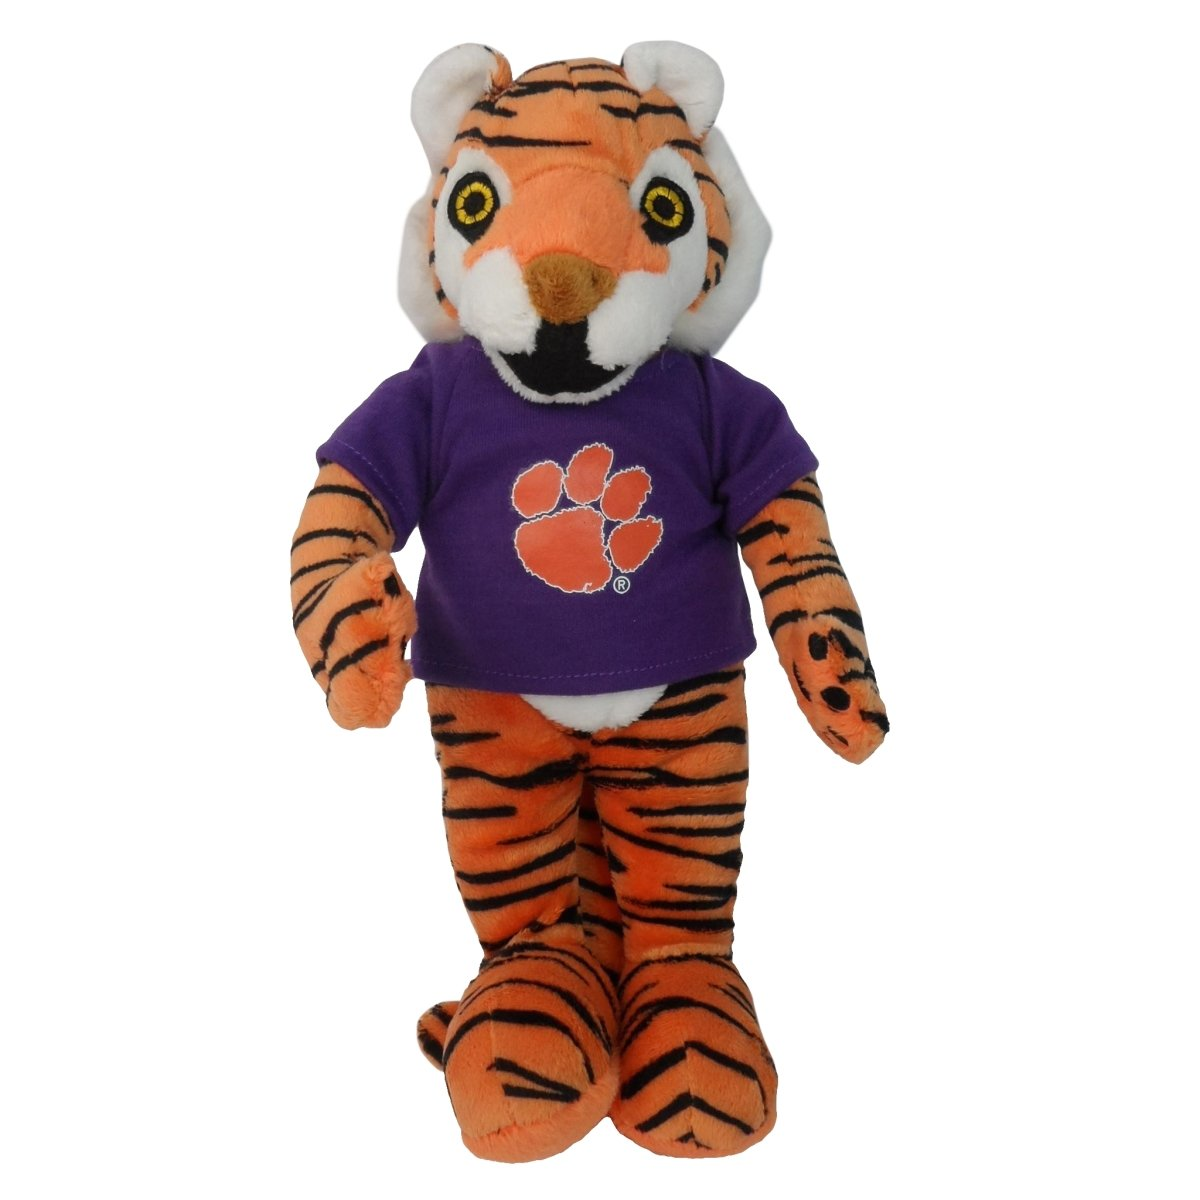 "Plush Tiger With Purple Tee - 11"" - Mr. Knickerbocker"